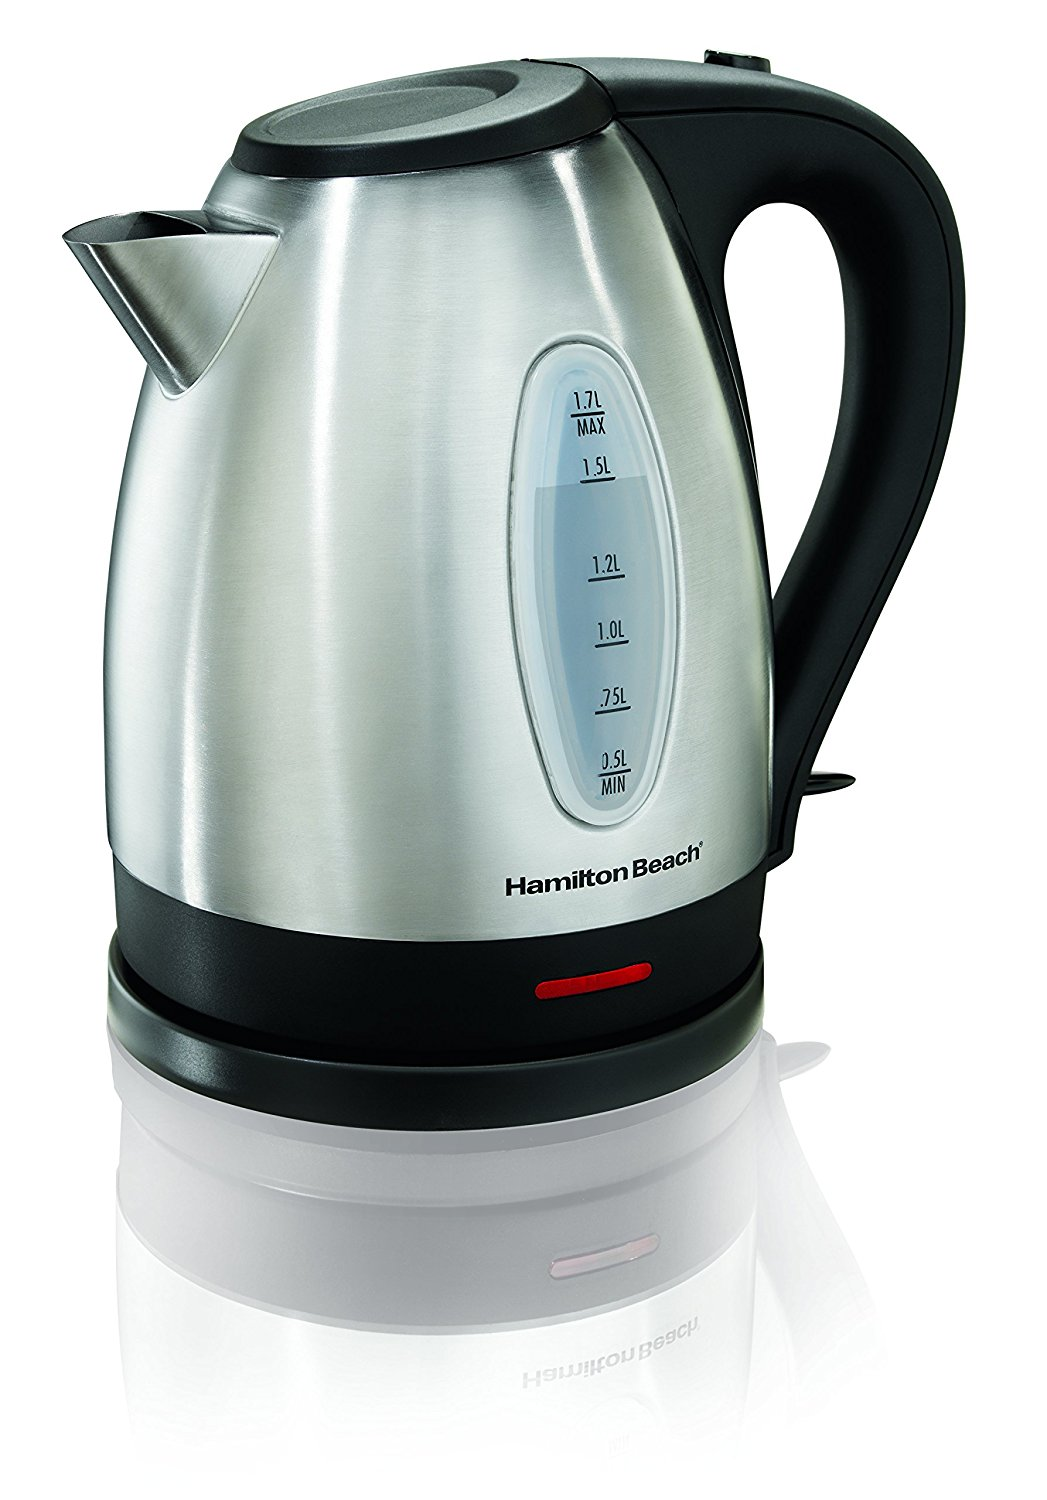 Hamilton Beach 40880 Stainless Steel Electric Kettle, 1.7-Liter, Silver